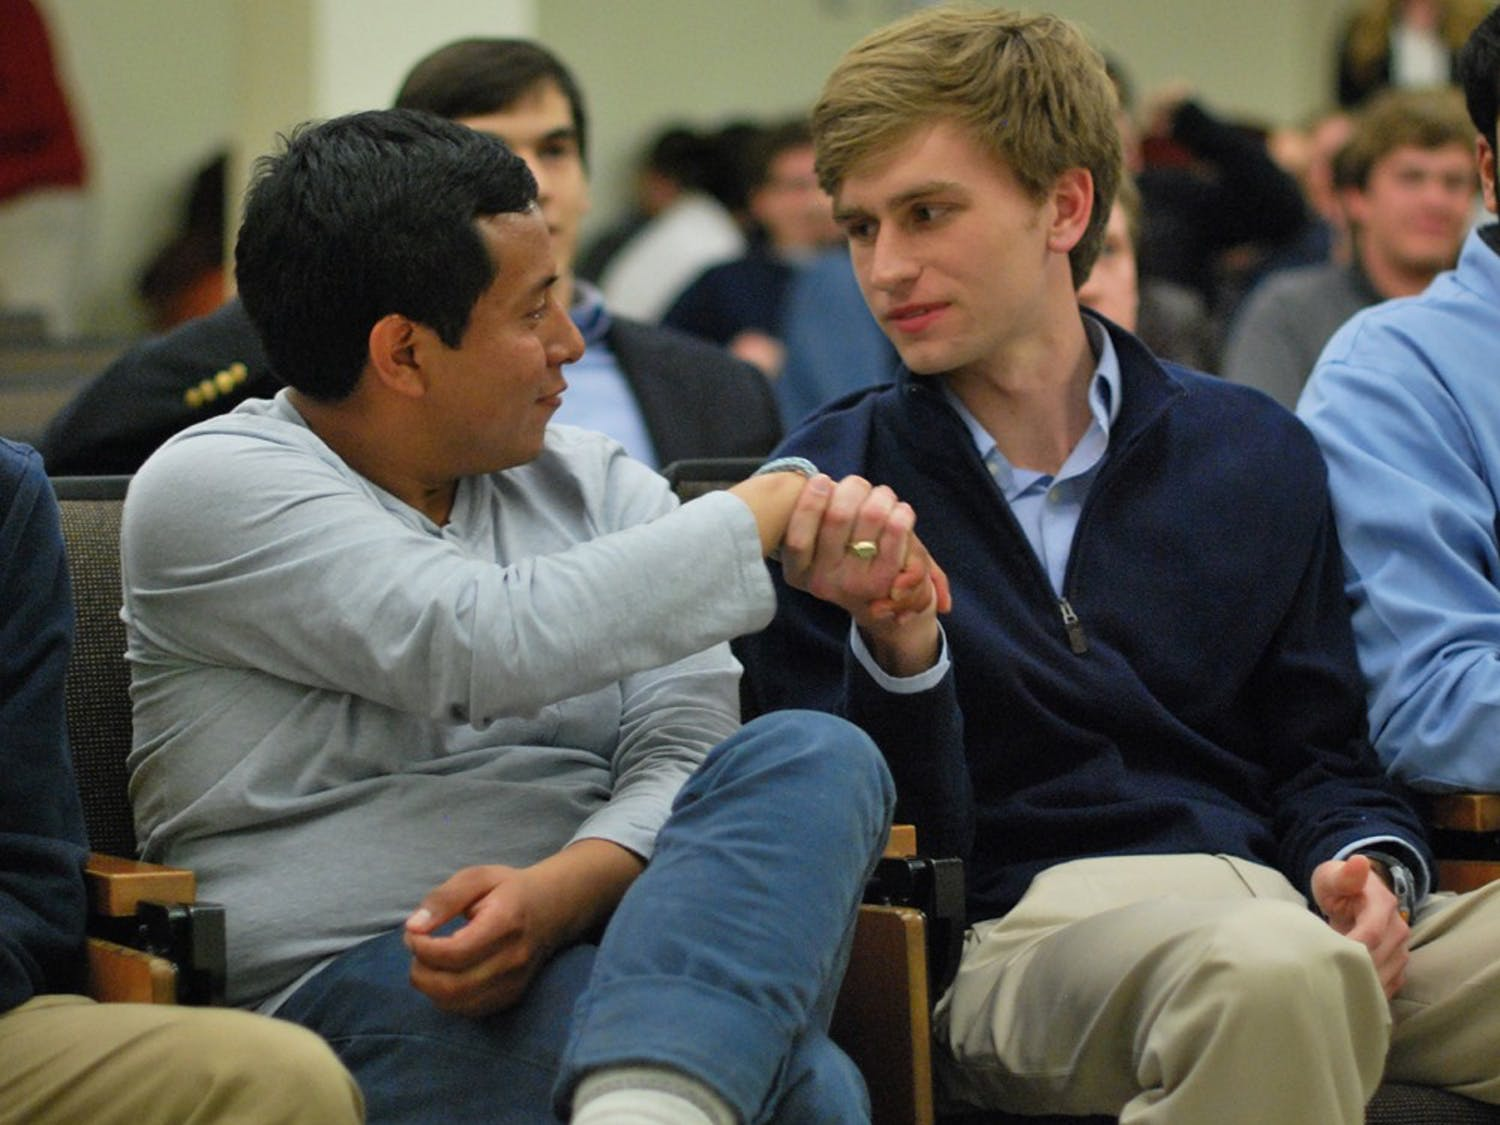 Andrew Powell shakes hands with Emilio Vincente after winning the Student Body President runoff election last night. Andrew won with a 62.9% majority and 4,760 votes.